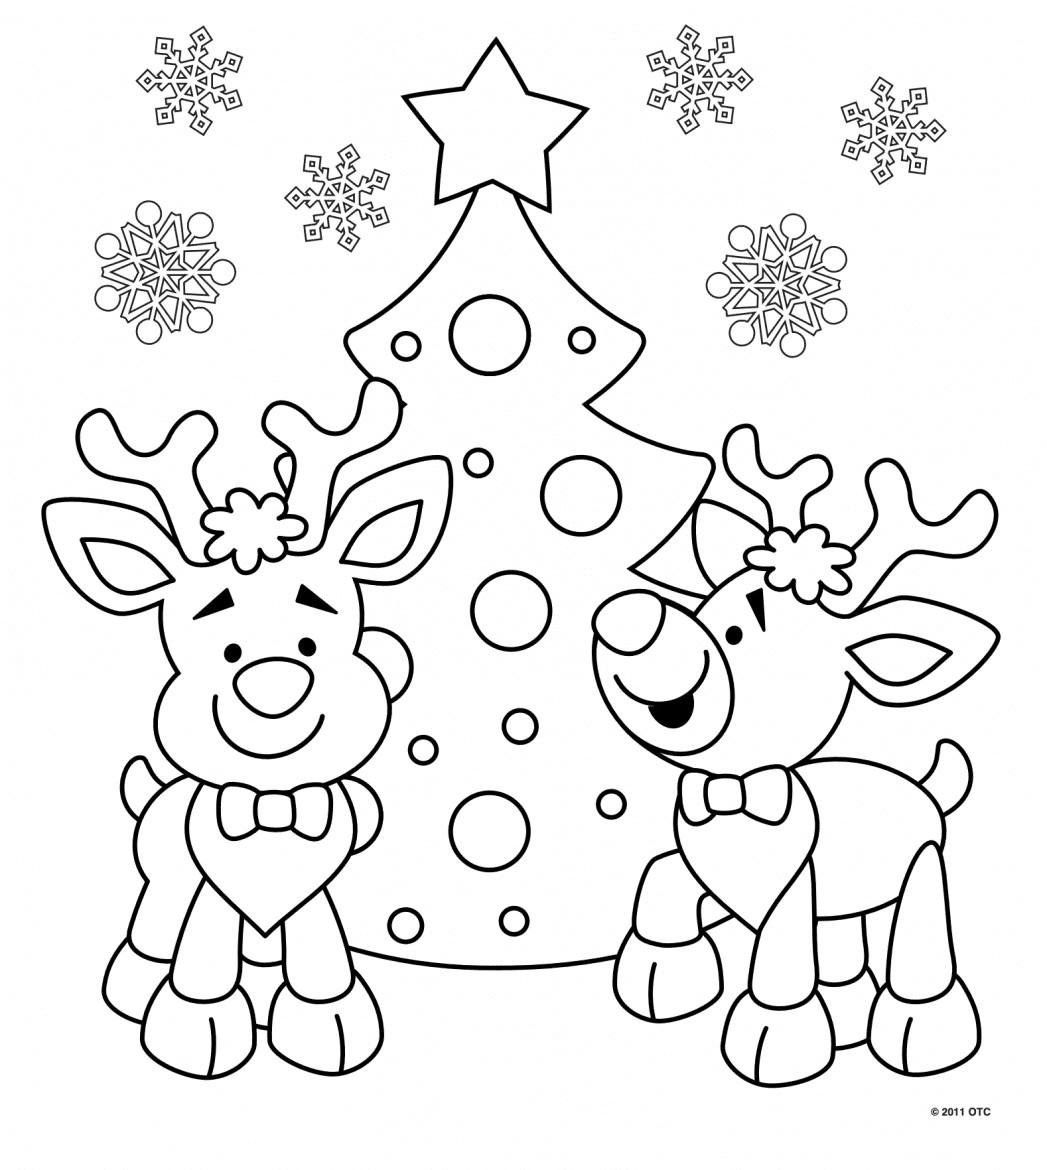 Printable Christmas Coloring Pages - Mr Printables | 1170x1047